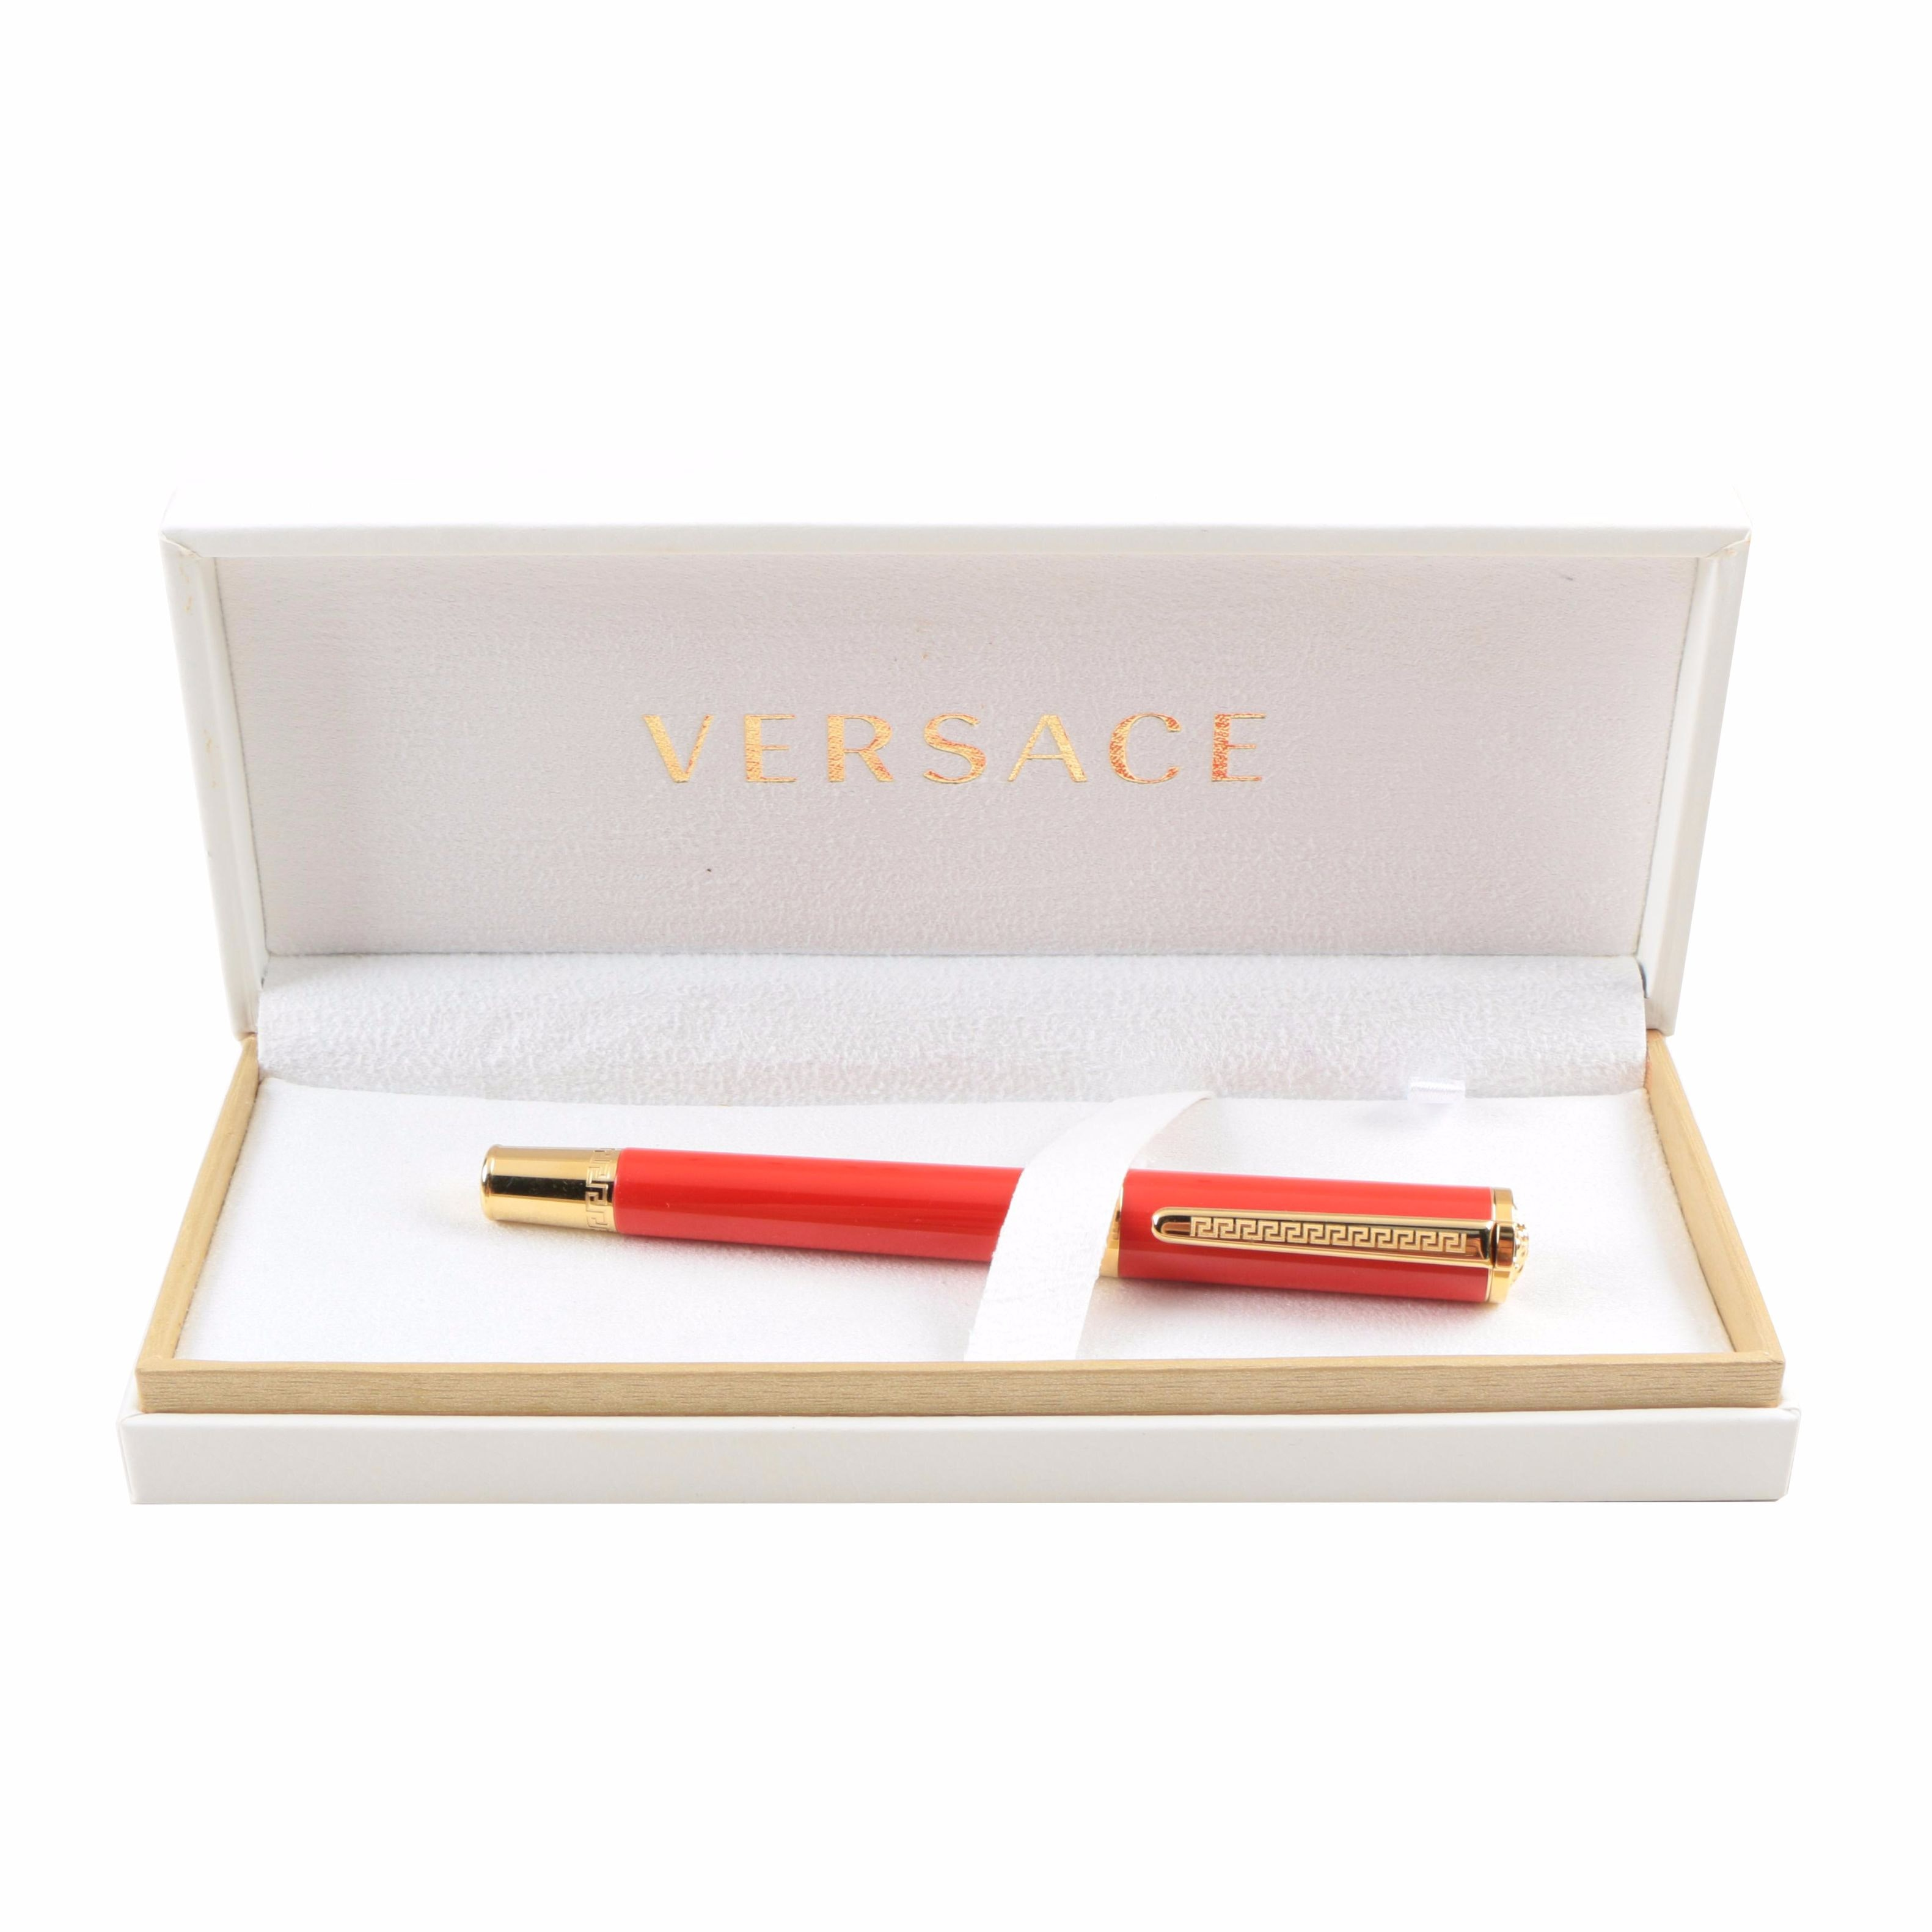 Versace Red Enamel Ball Point Pen with 14K Yellow Gold Plated Clip and Caps